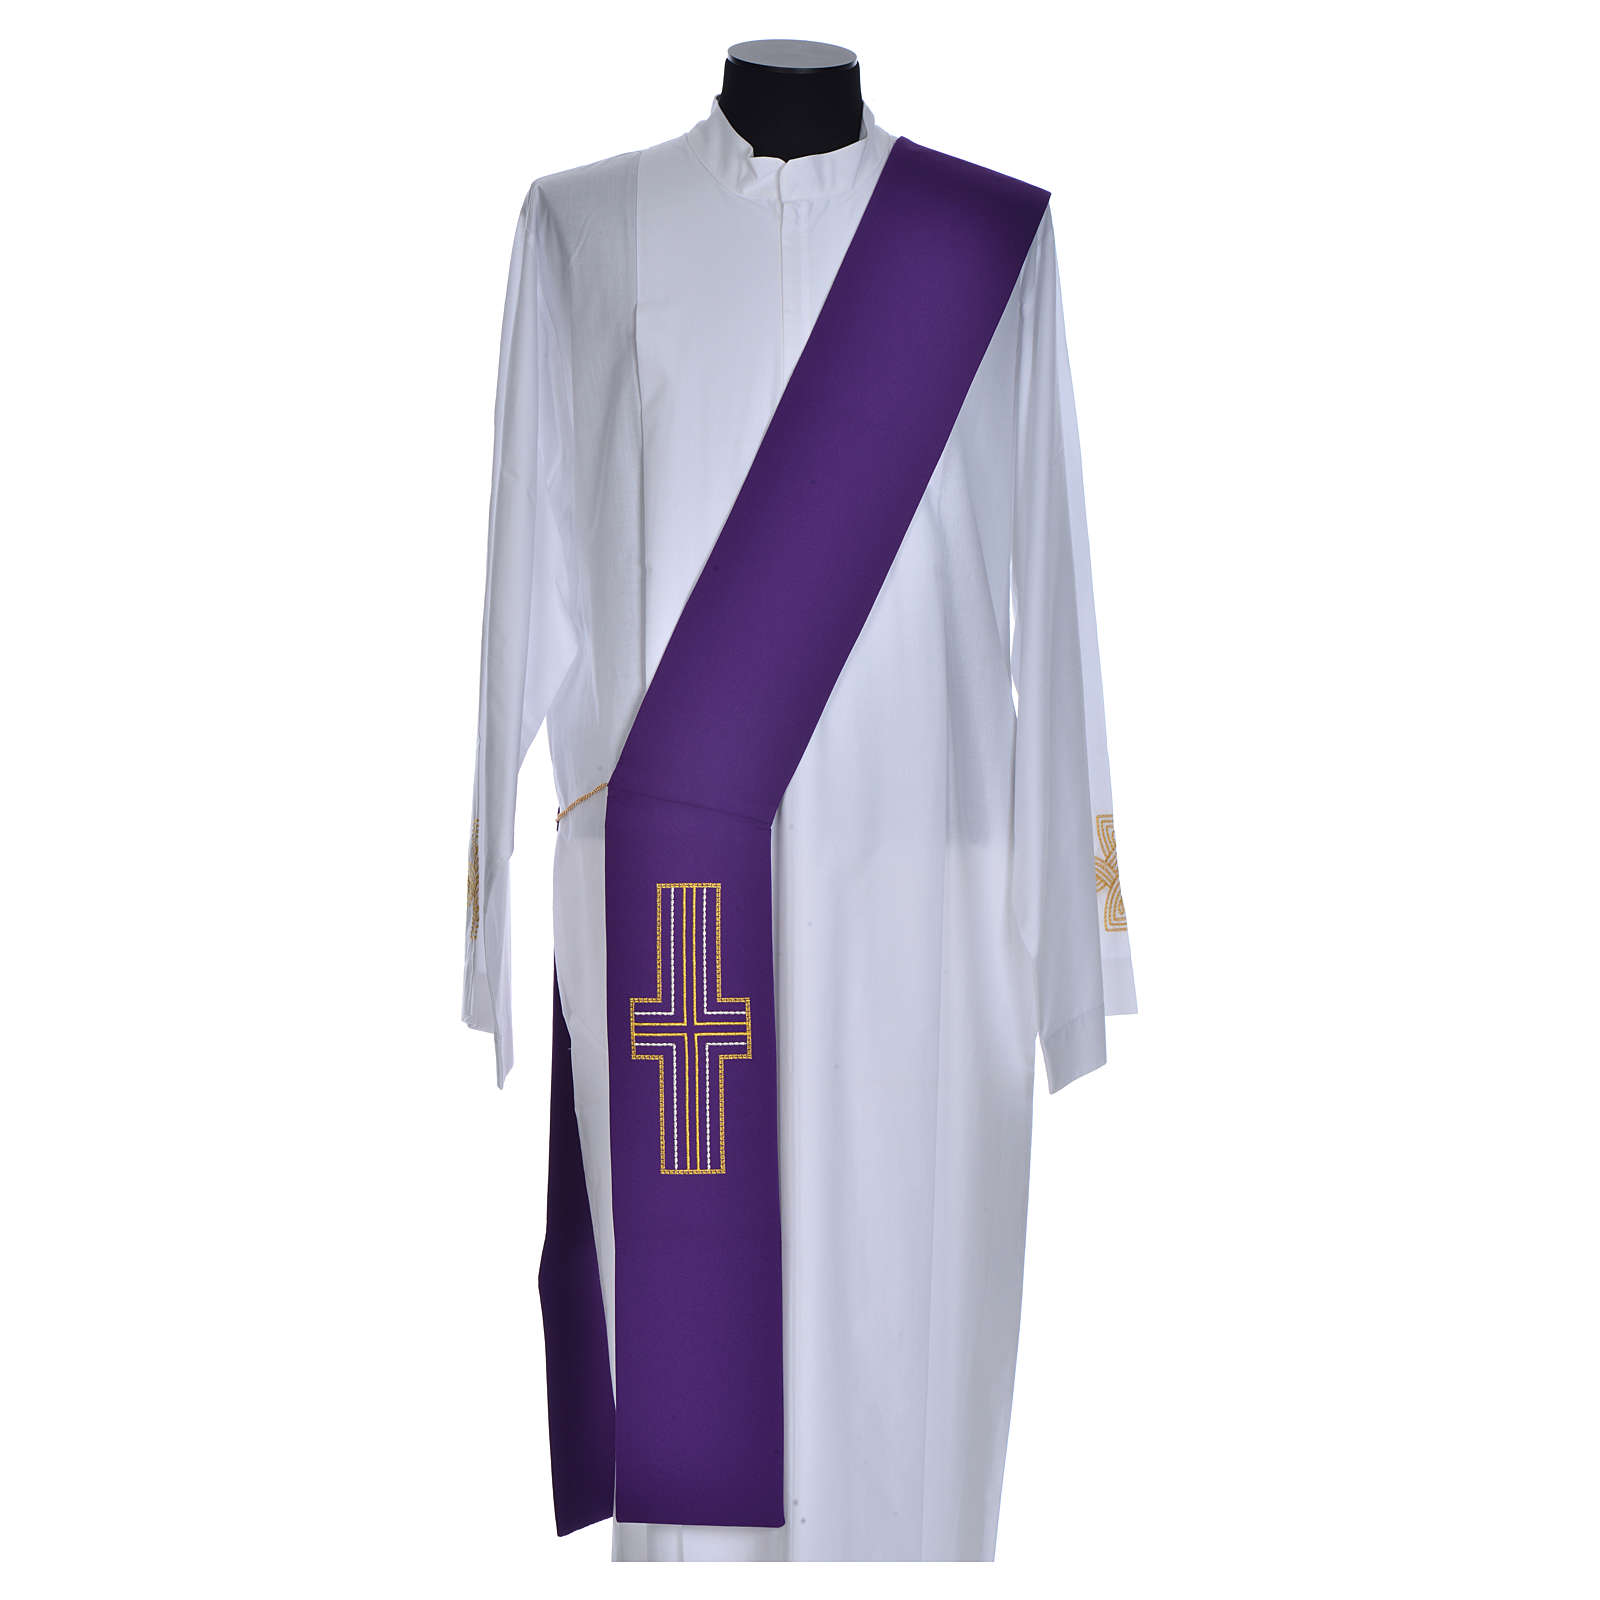 Diaconal stole in polyester with cross 4